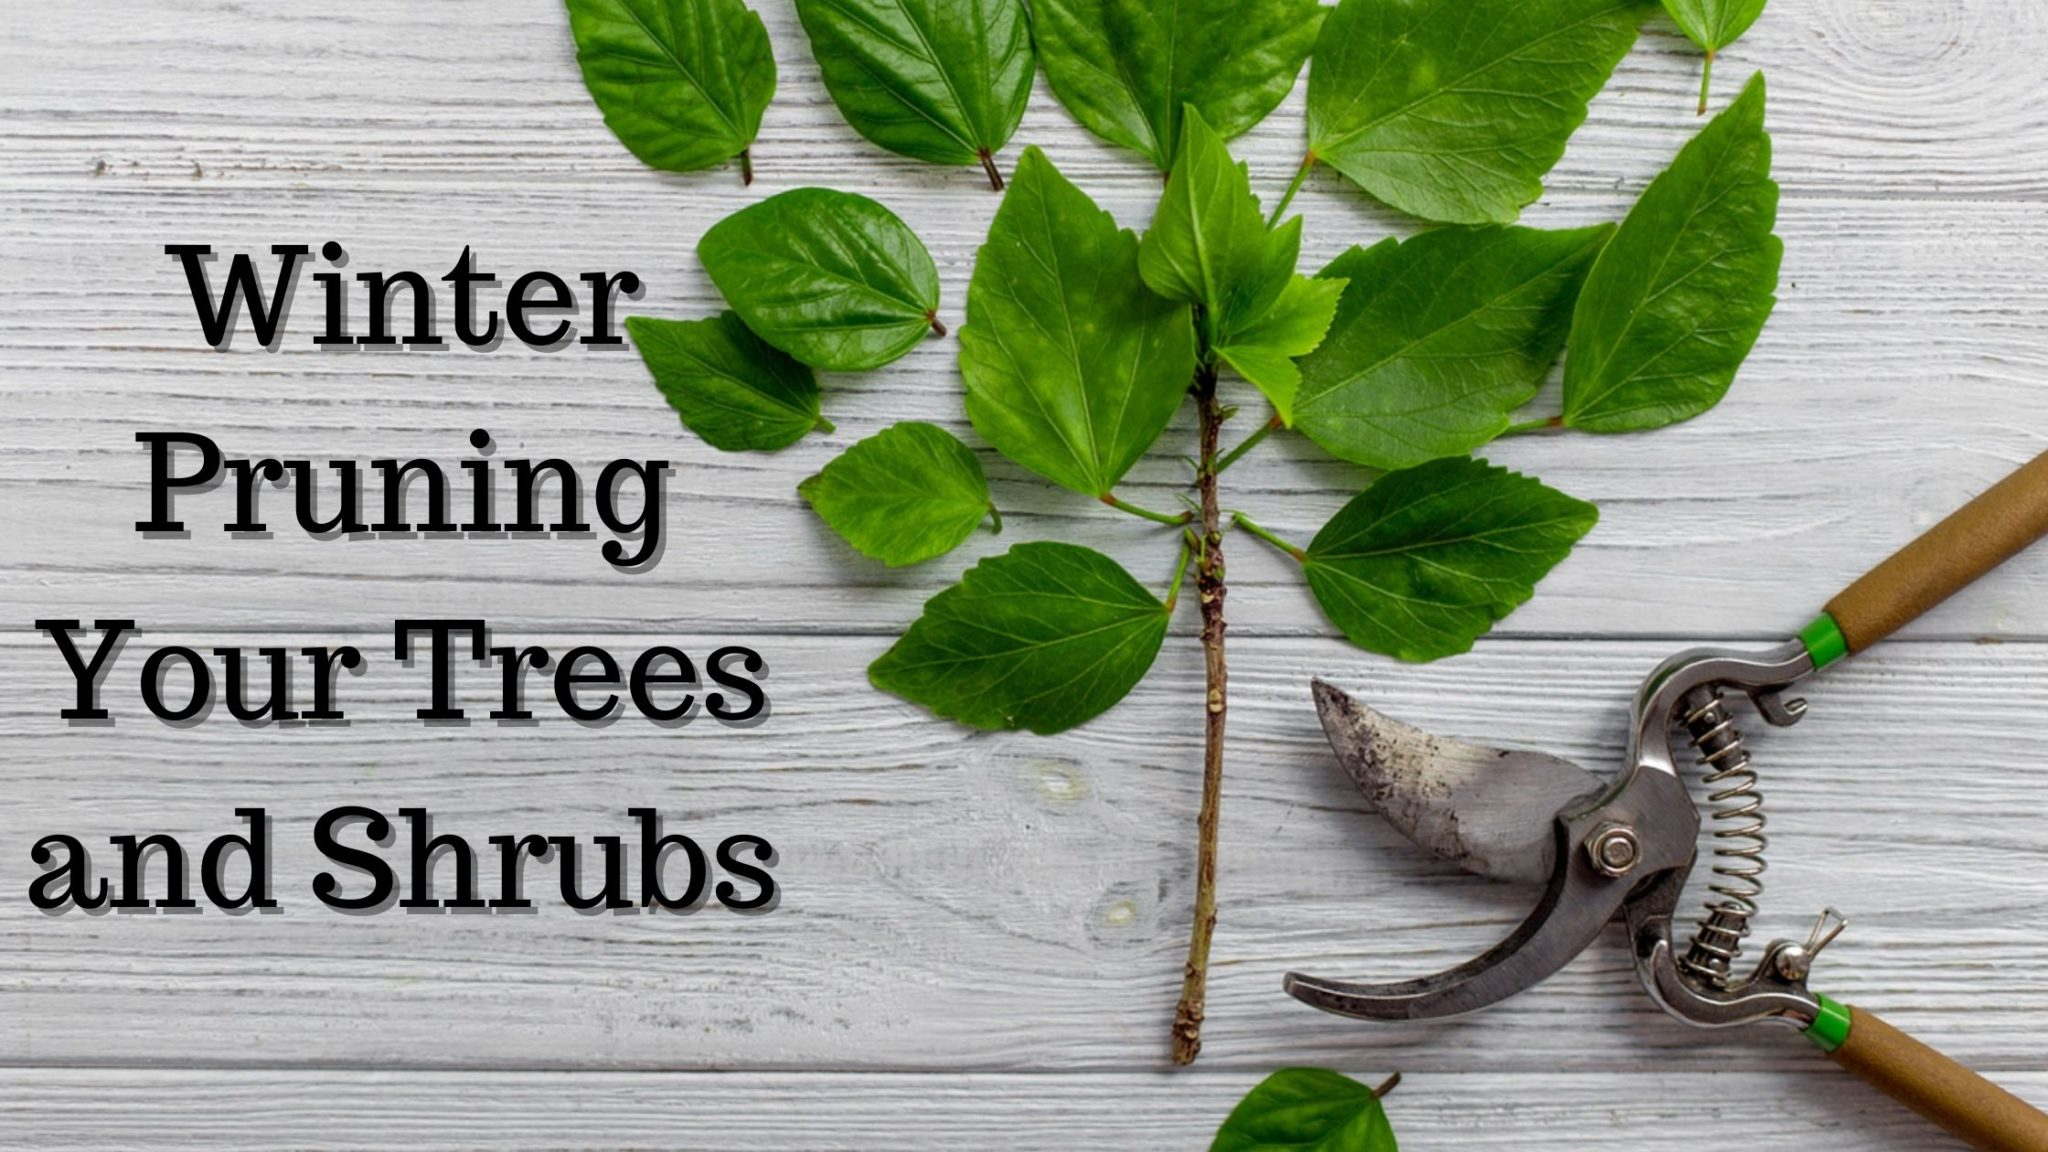 Winter Pruning Your Trees and Shrubs